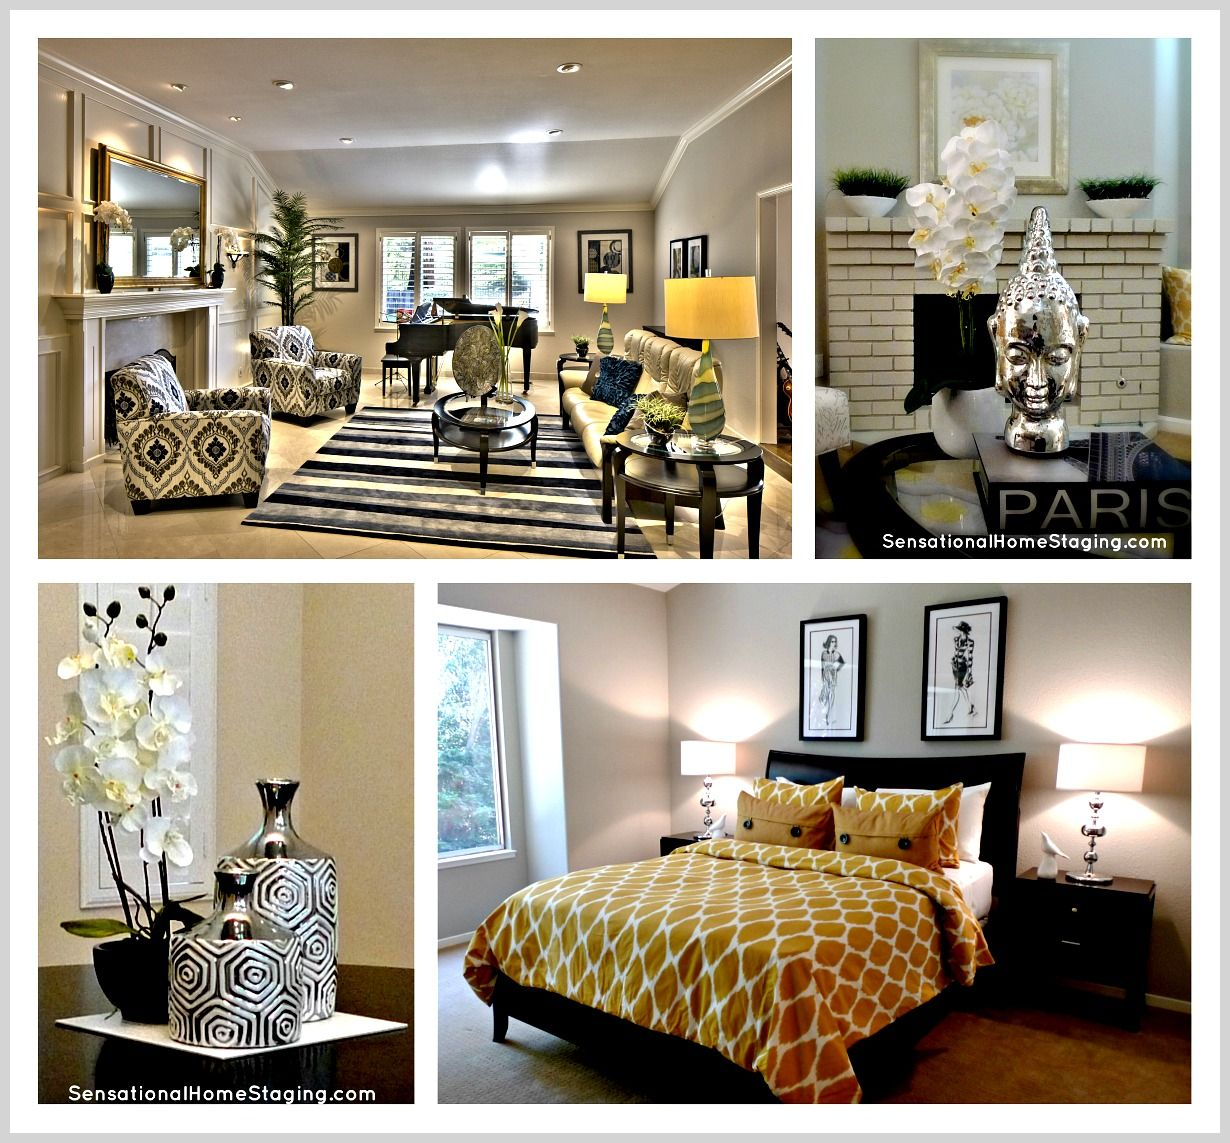 Home Staging Gallery: Home Staging Danville, CA #homestaging